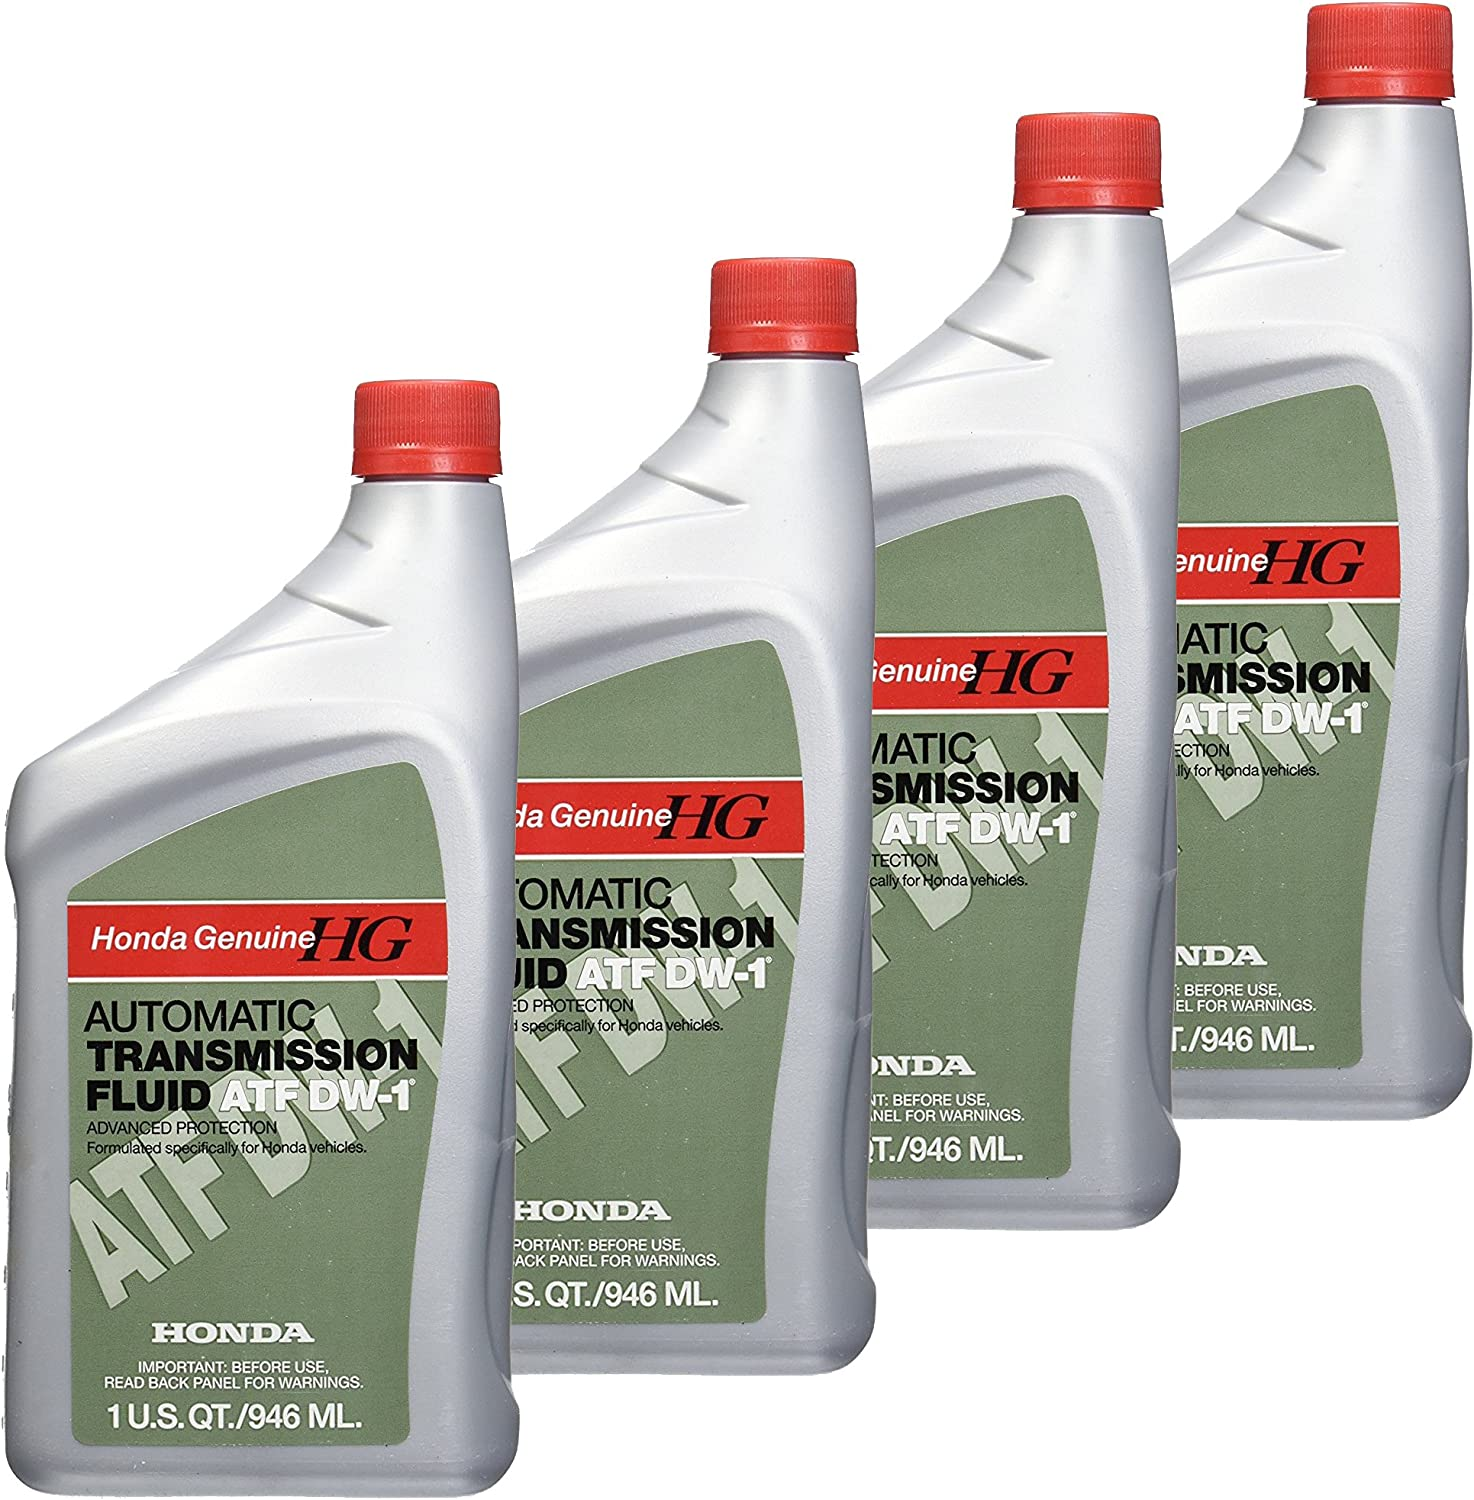 Honda FBA_08200-9008 08200-9008 Automatic Transmission Fluid, 4 Pack, 1 US QT /946...